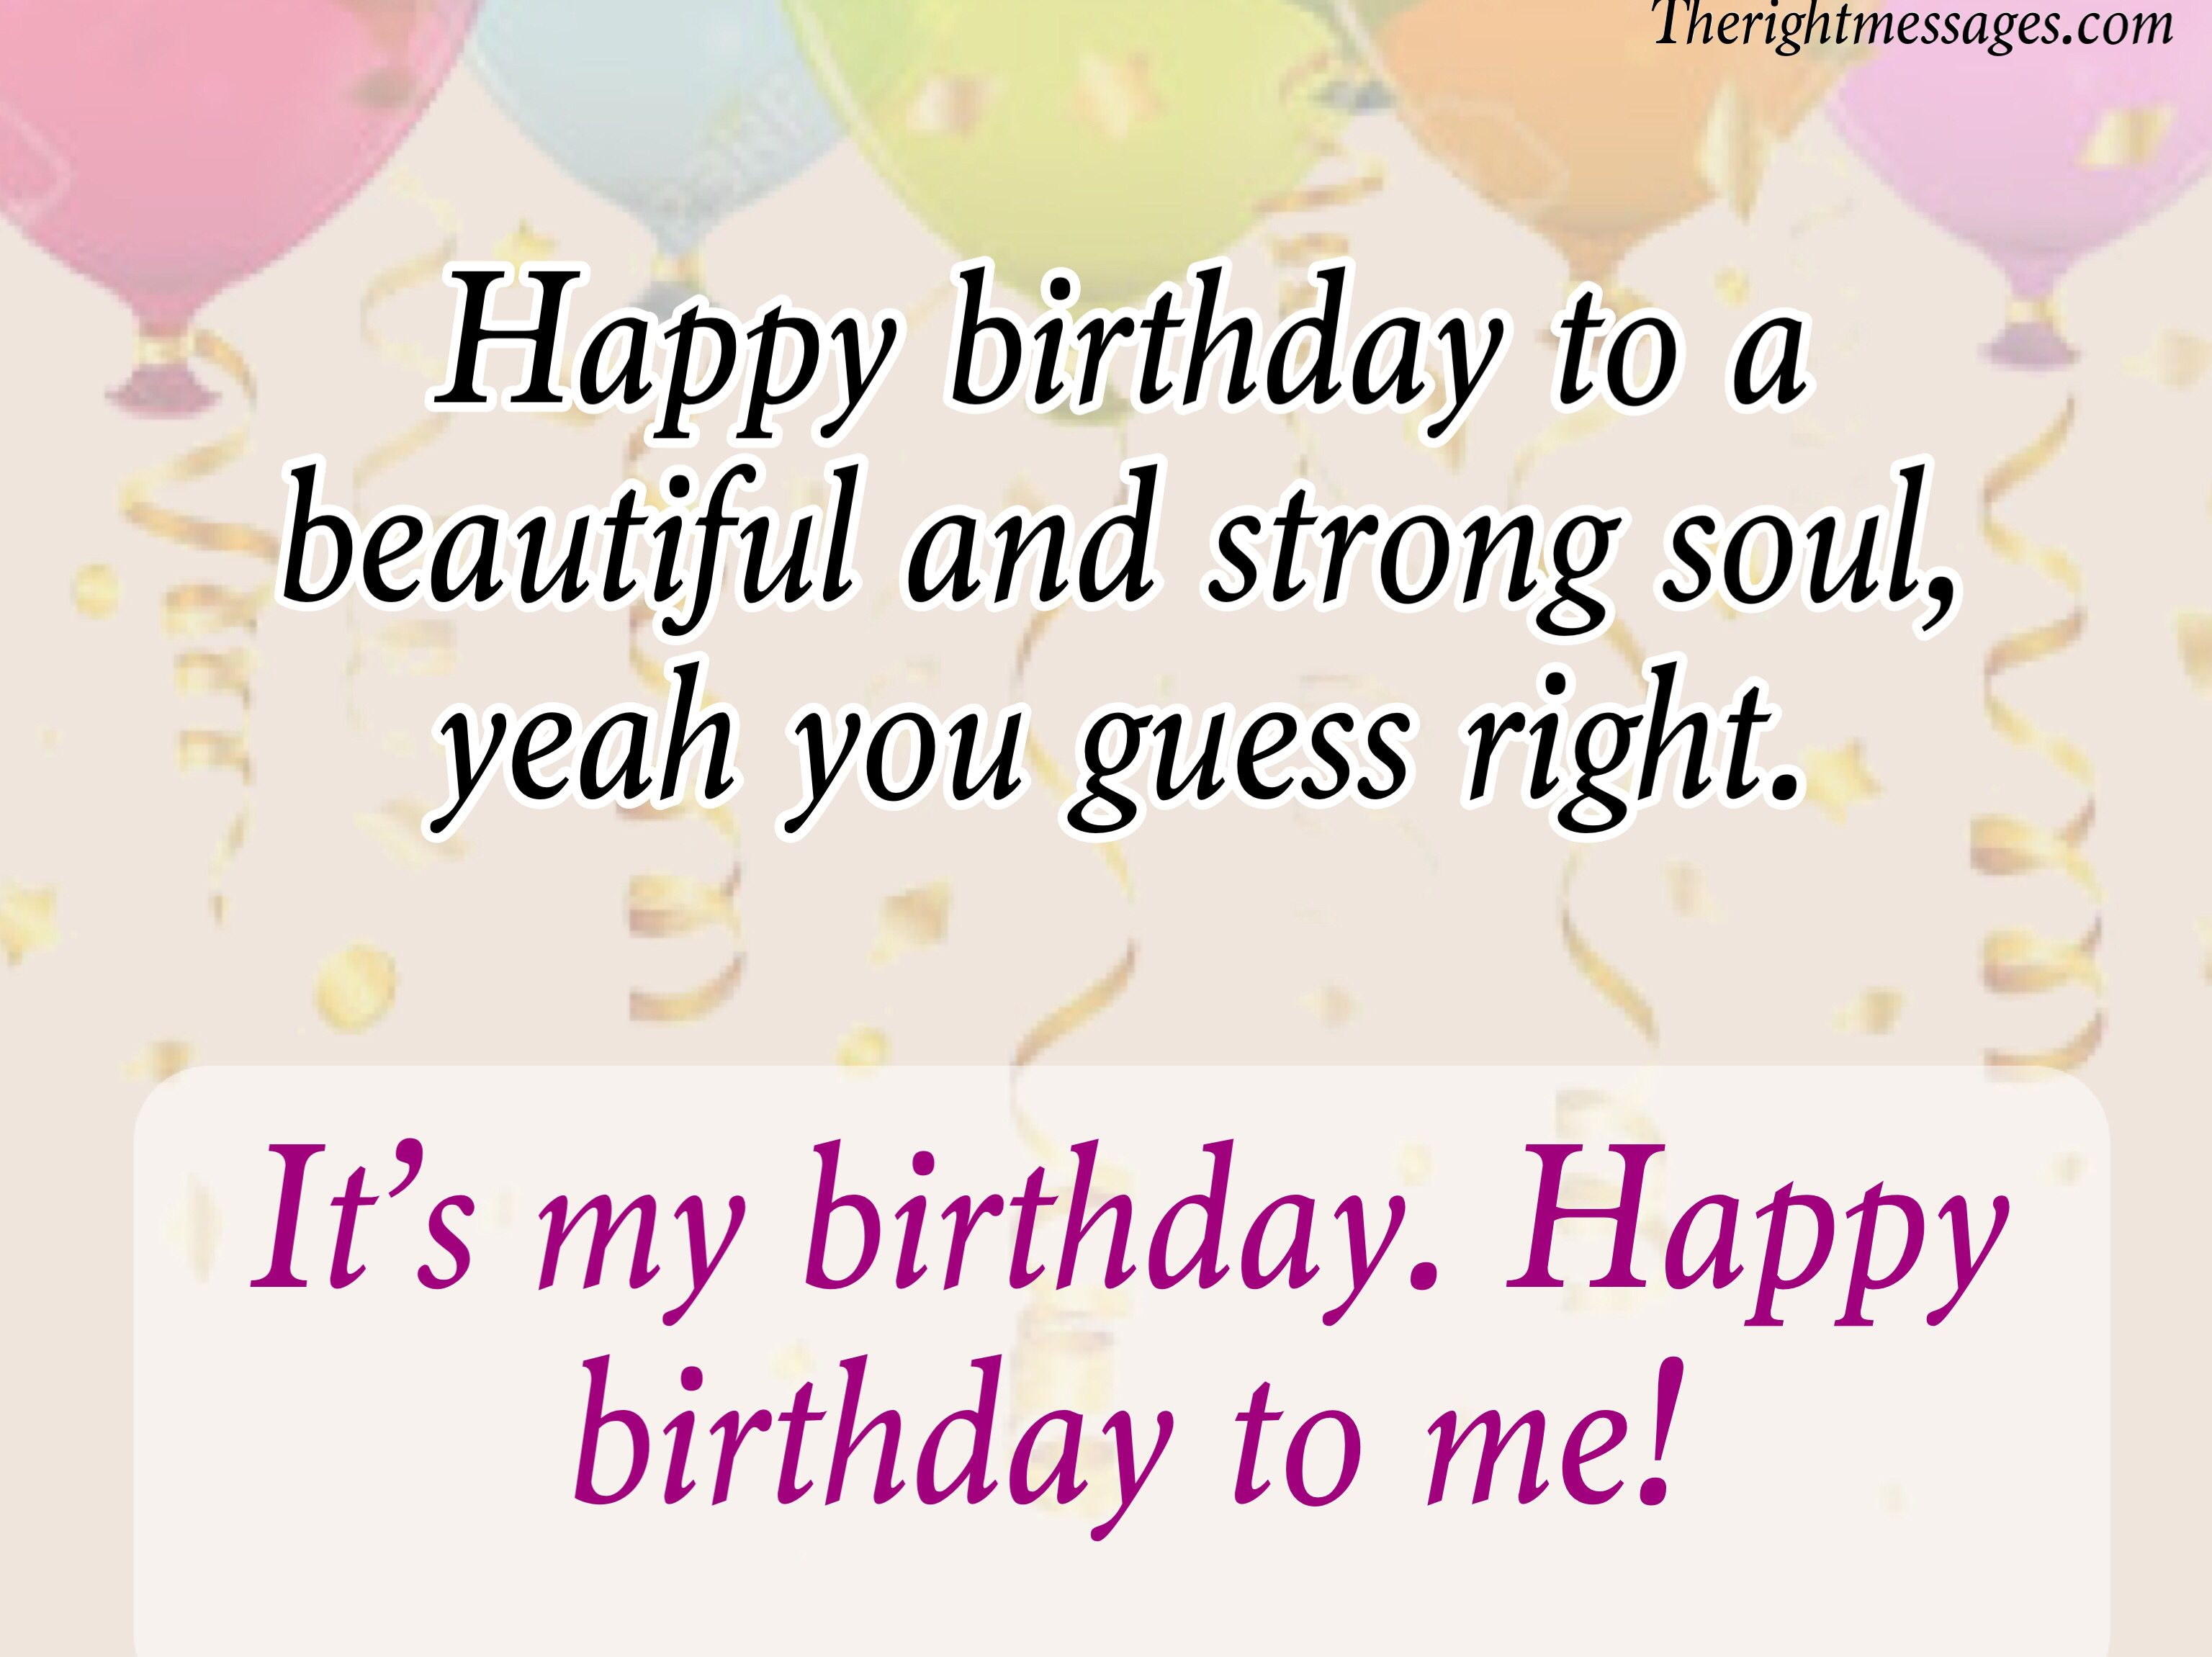 Short Long Birthday Wishes For Myself The Right Messages Happy Birthday Wishes Quotes Birthday Wishes For Myself Happy Birthday To Me Quotes